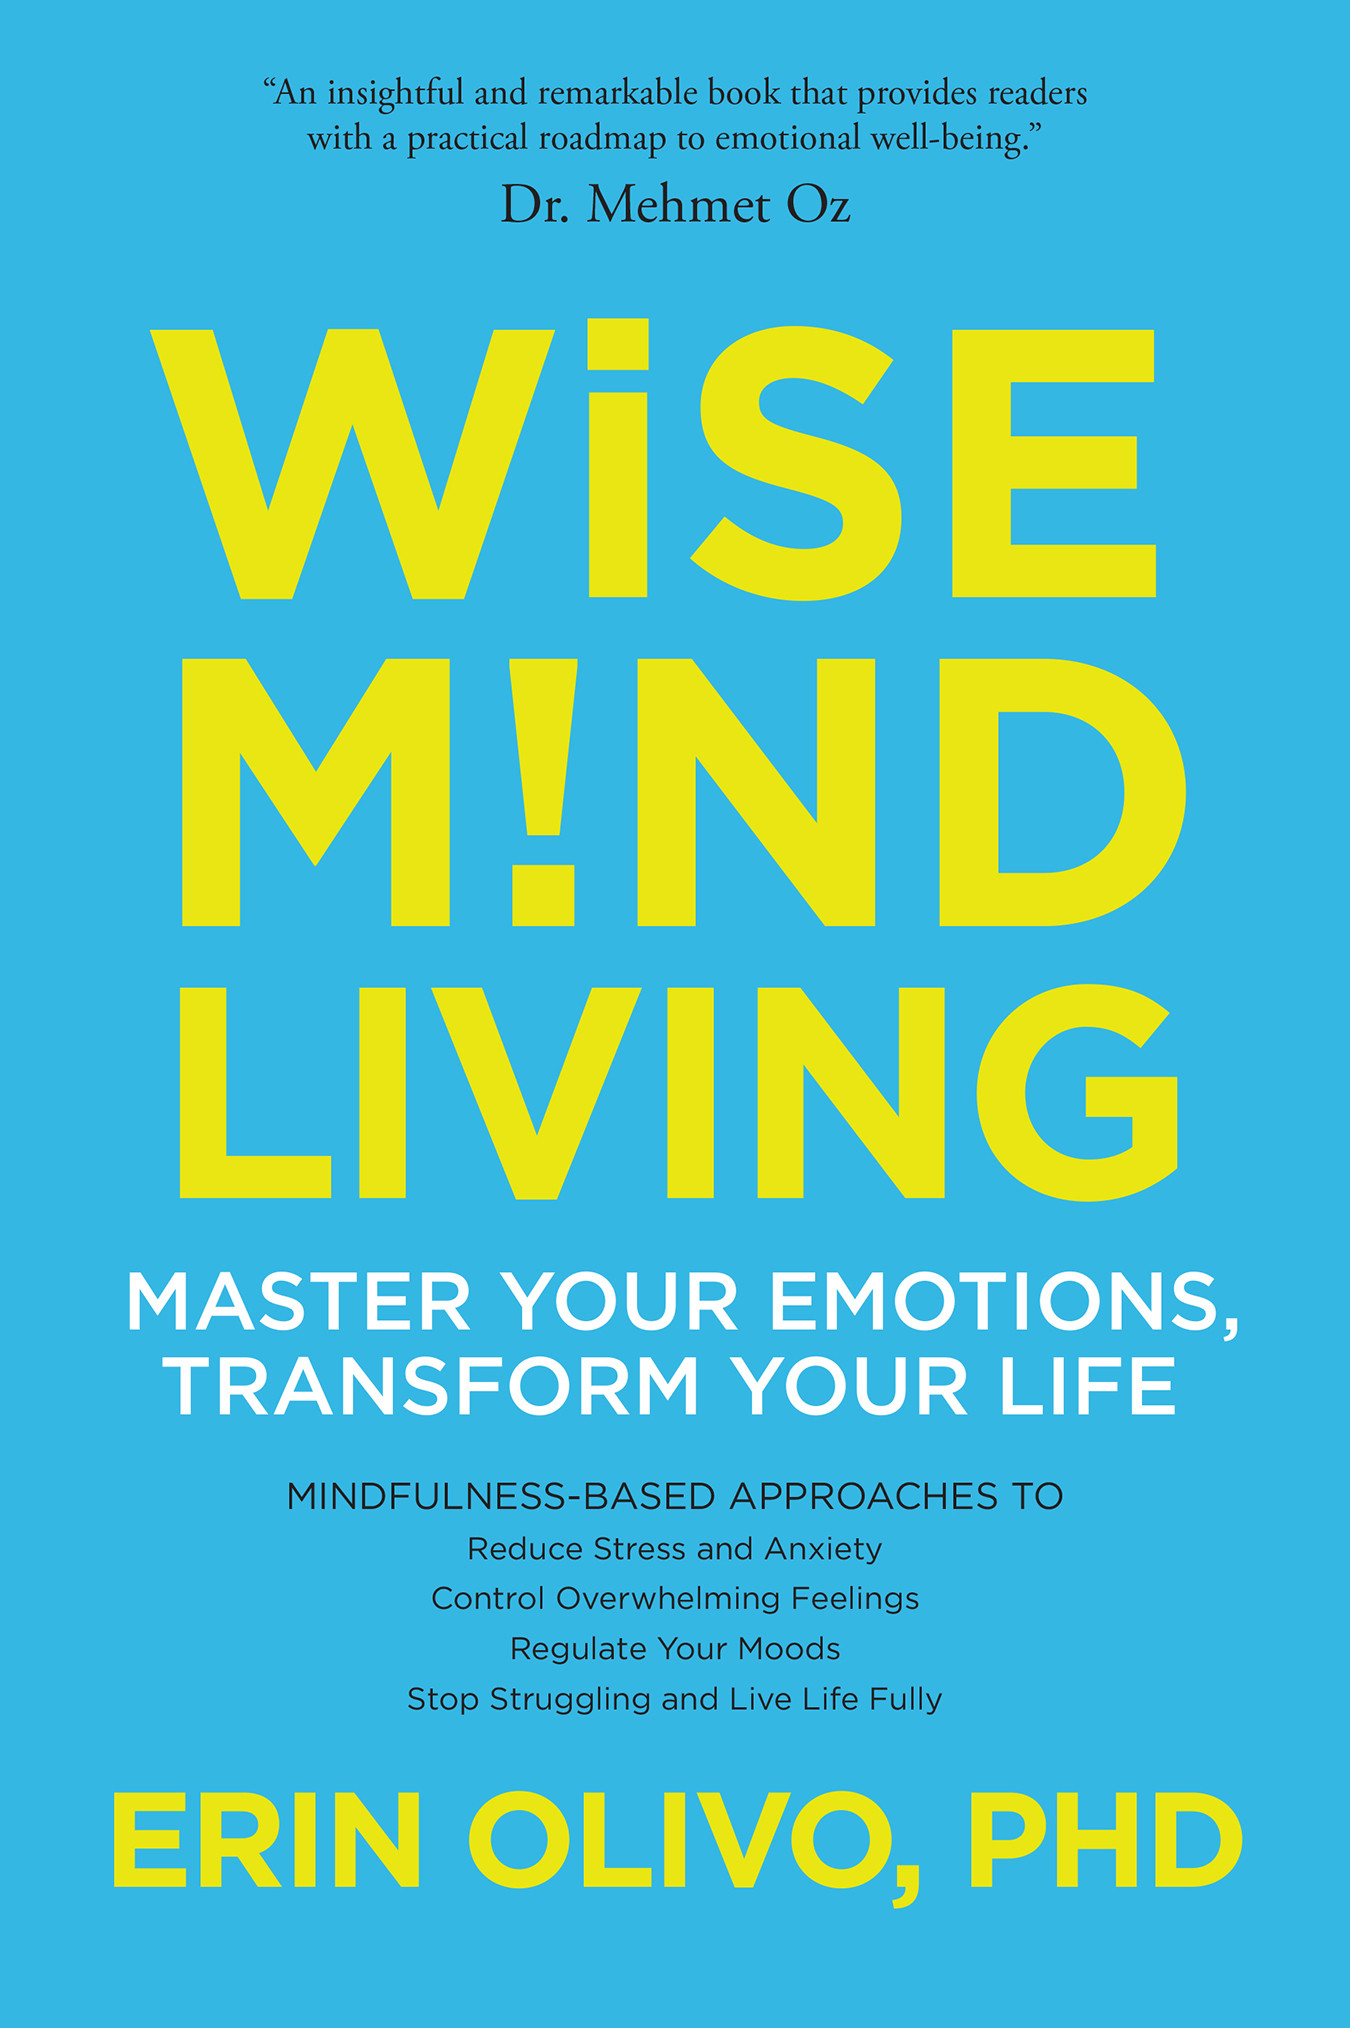 Master Your Emotions Transform Your Life